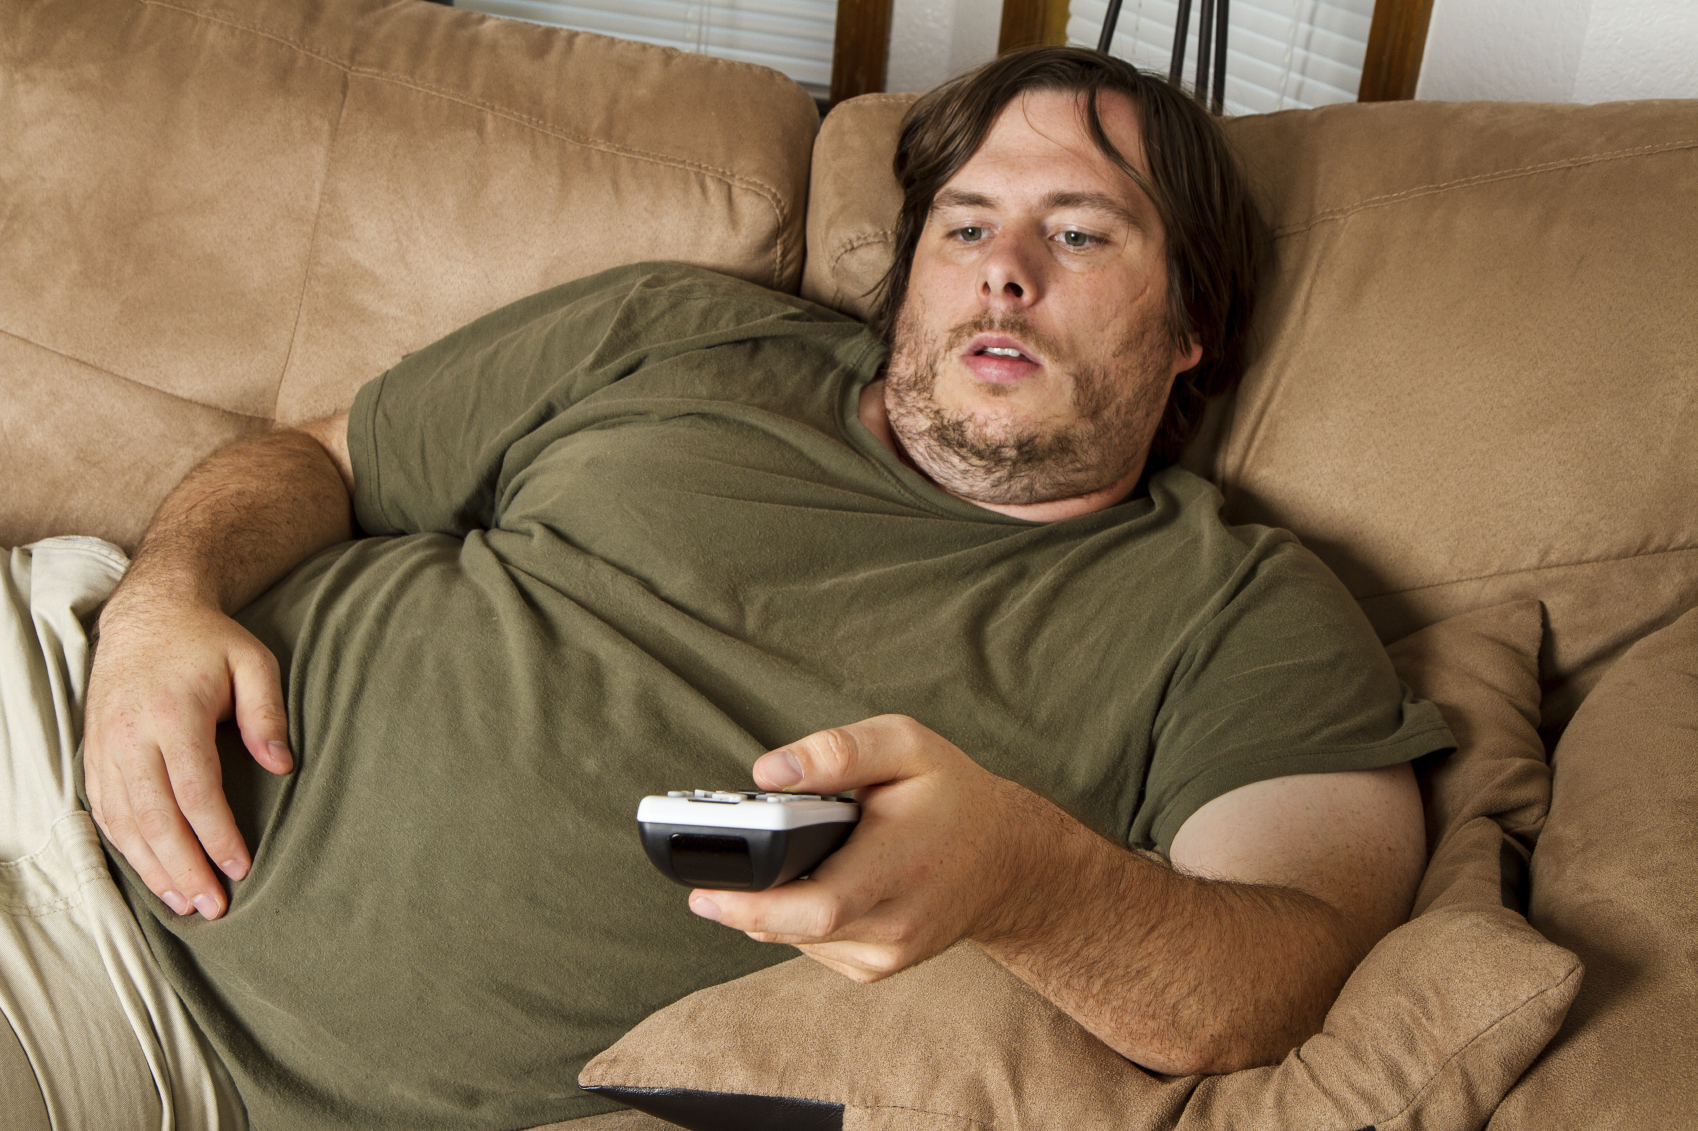 Couch potatoes may have smaller brains later in life - CBS News